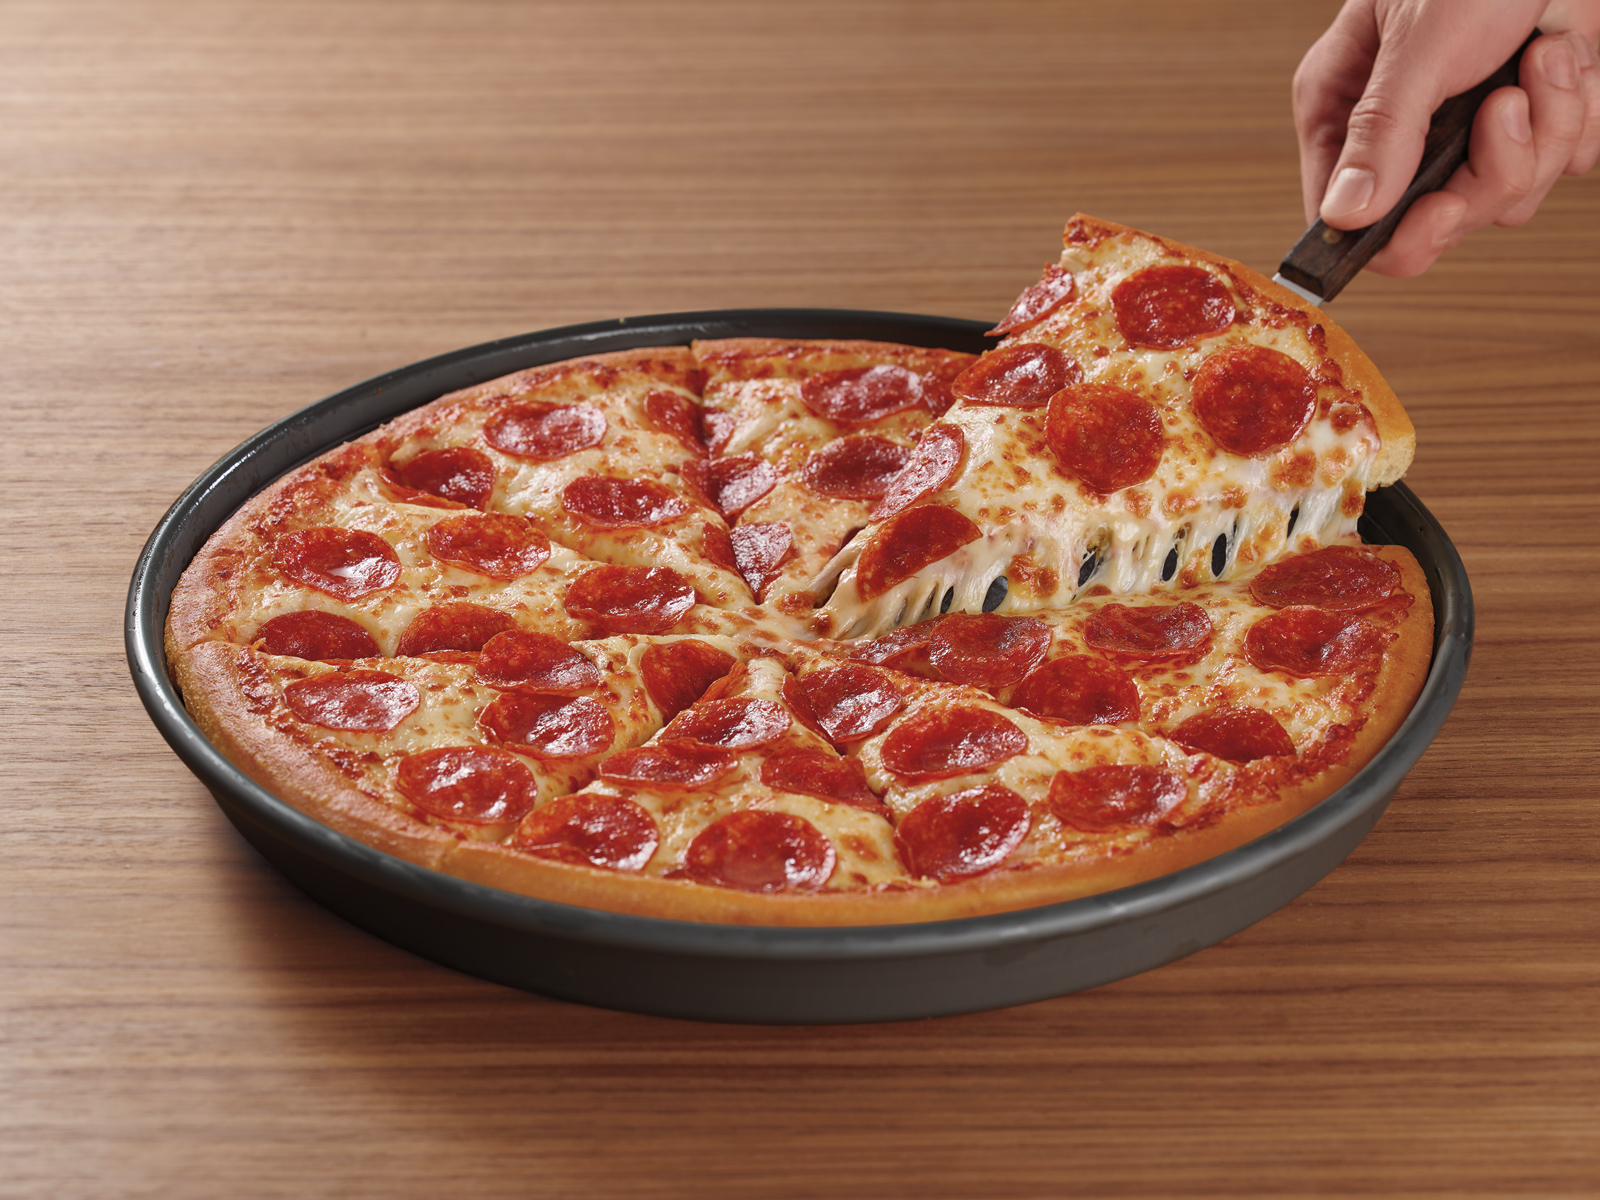 Pizza Hut Updated Its Original Pan Pizza (and We Tried It)